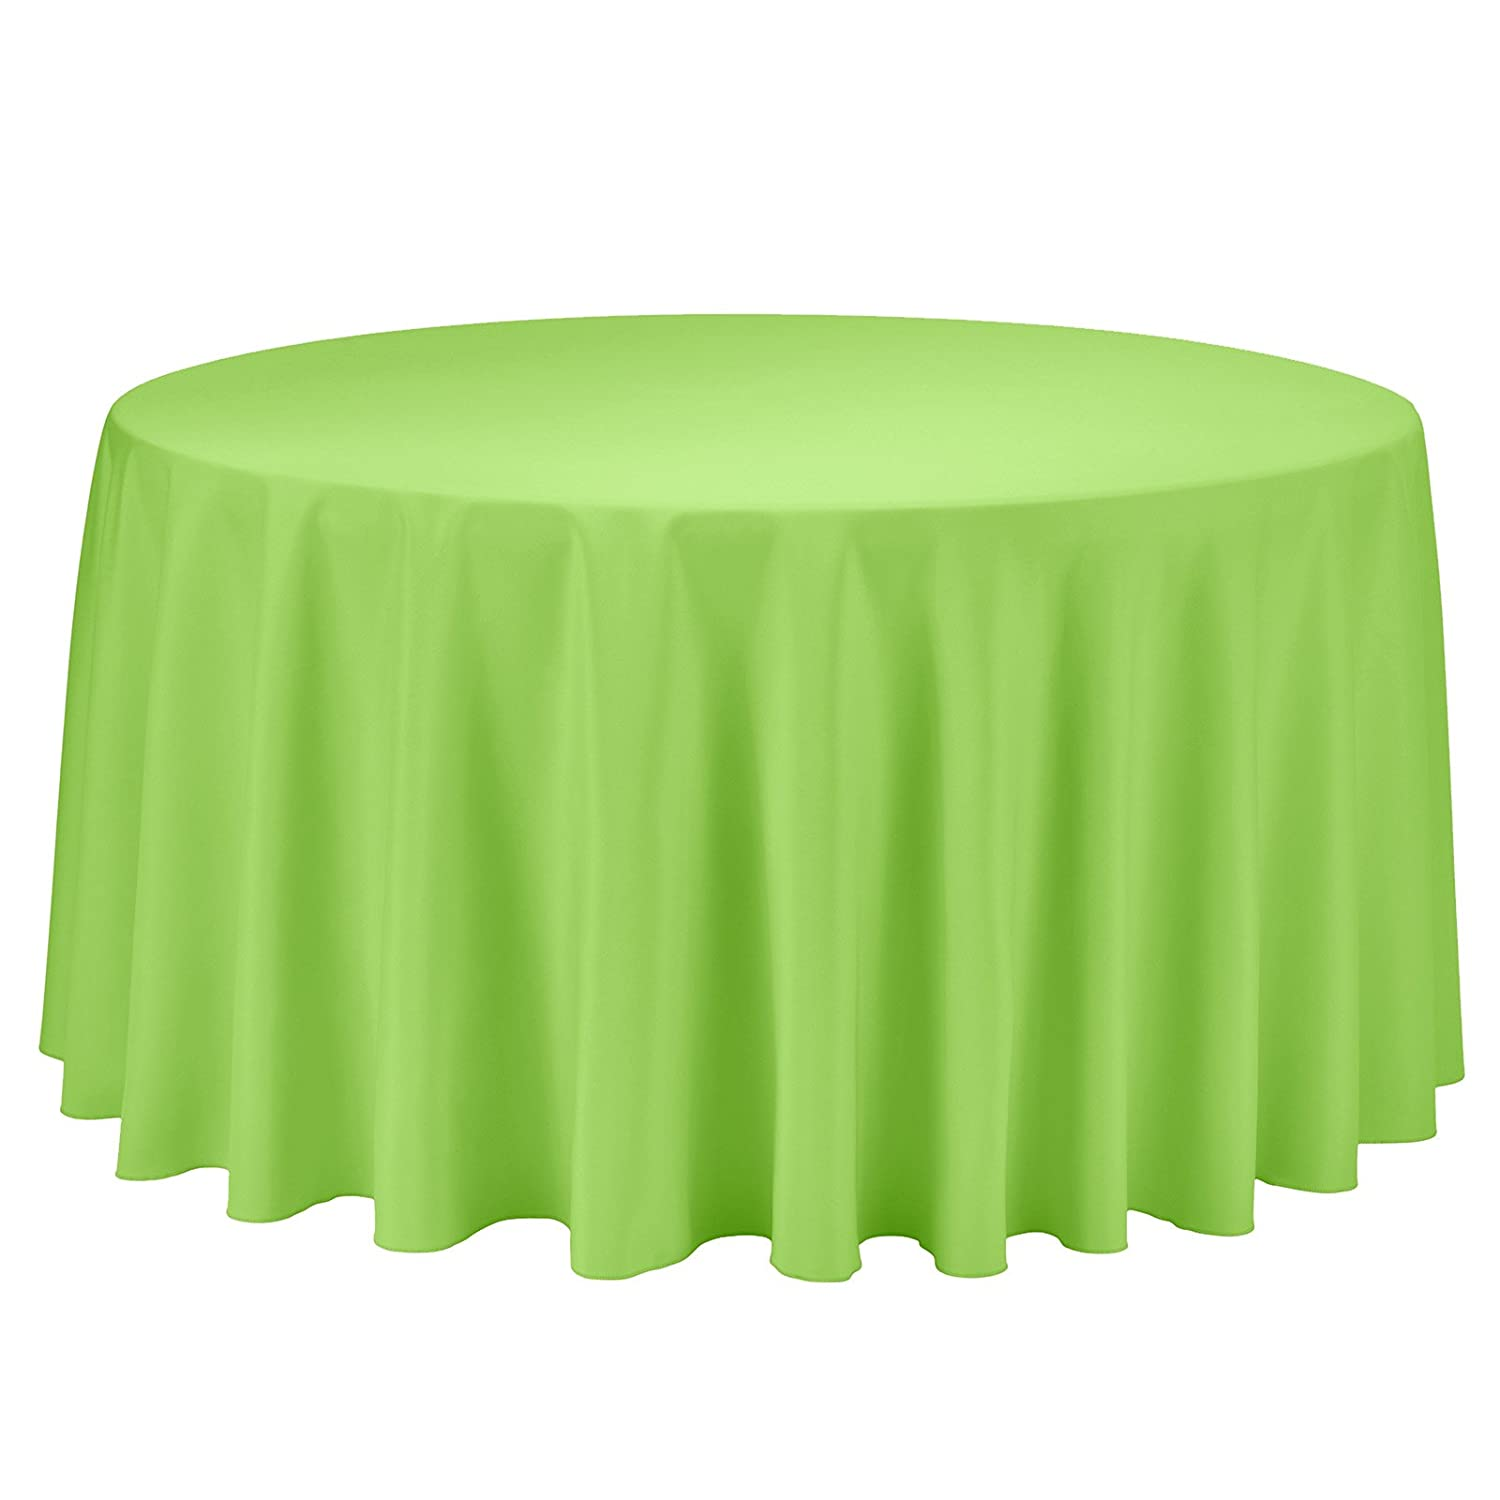 Fabulous Remedios Round Tablecloth Solid Color Polyester Table Cloth For Bridal Shower Wedding Table Wrinkle Free Dinner Tablecloth For Restaurant Party Download Free Architecture Designs Scobabritishbridgeorg